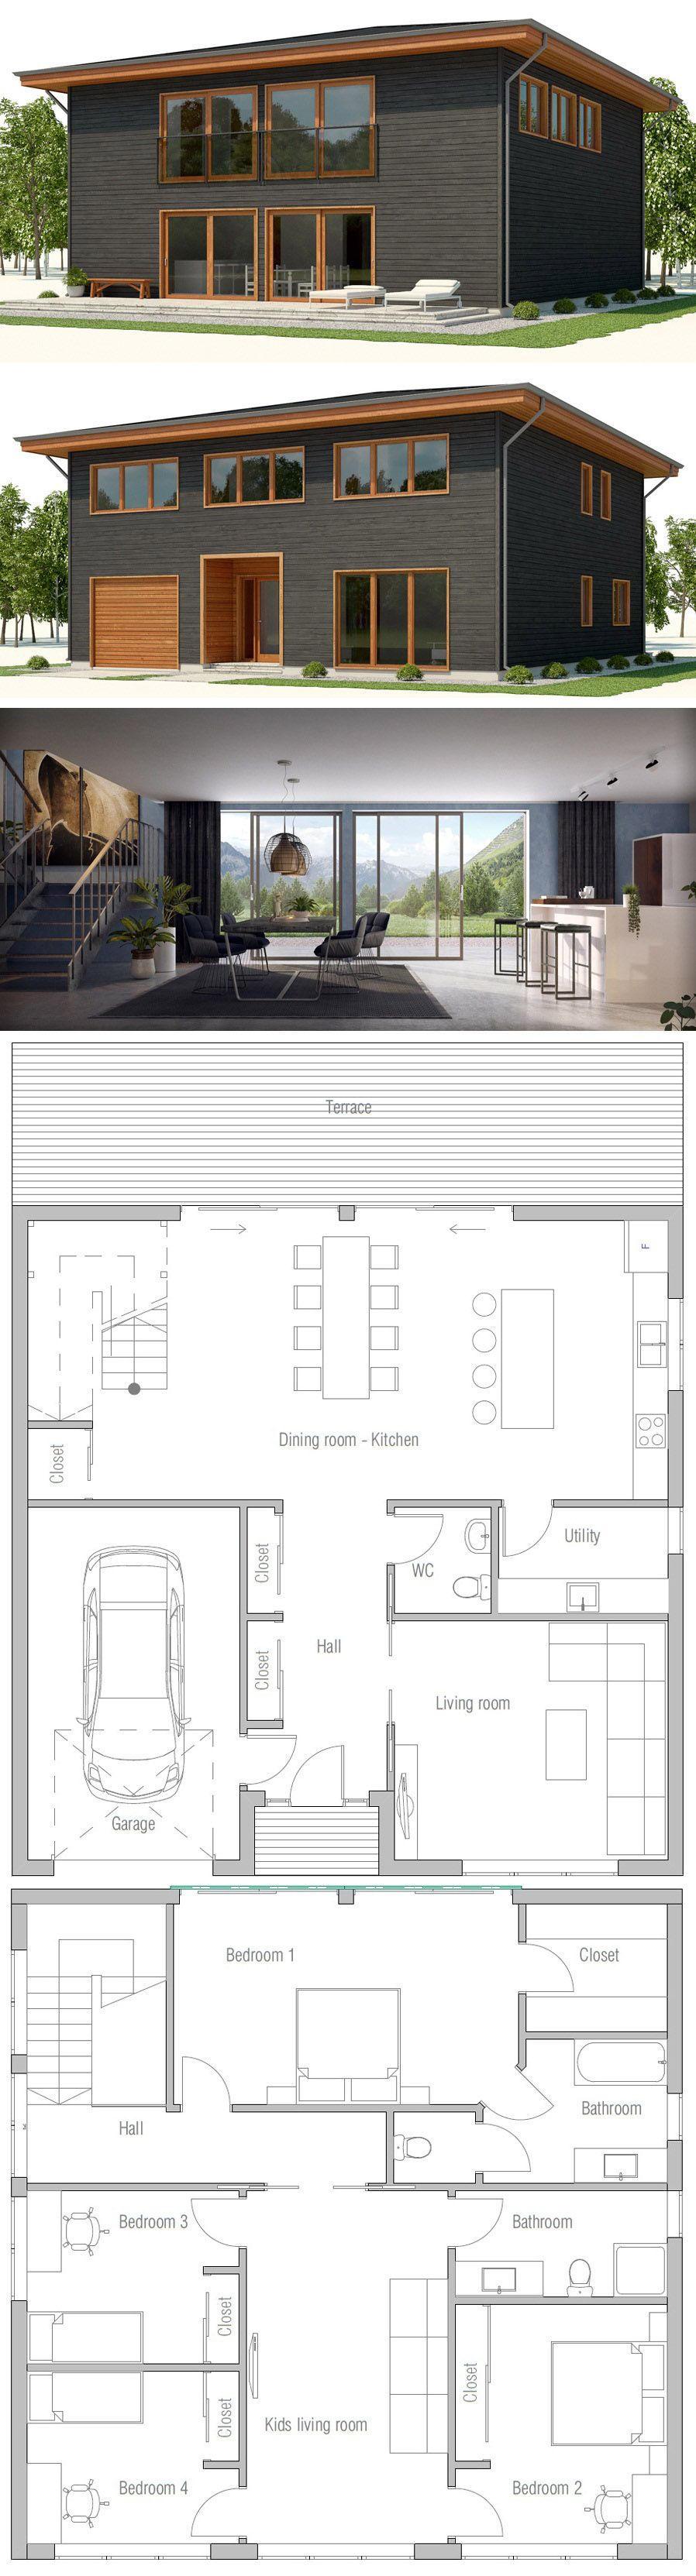 House Designs Home Plans Floorplans Adhouseplans Architecture Homeplans My House Plans House Designs Exterior House Layouts